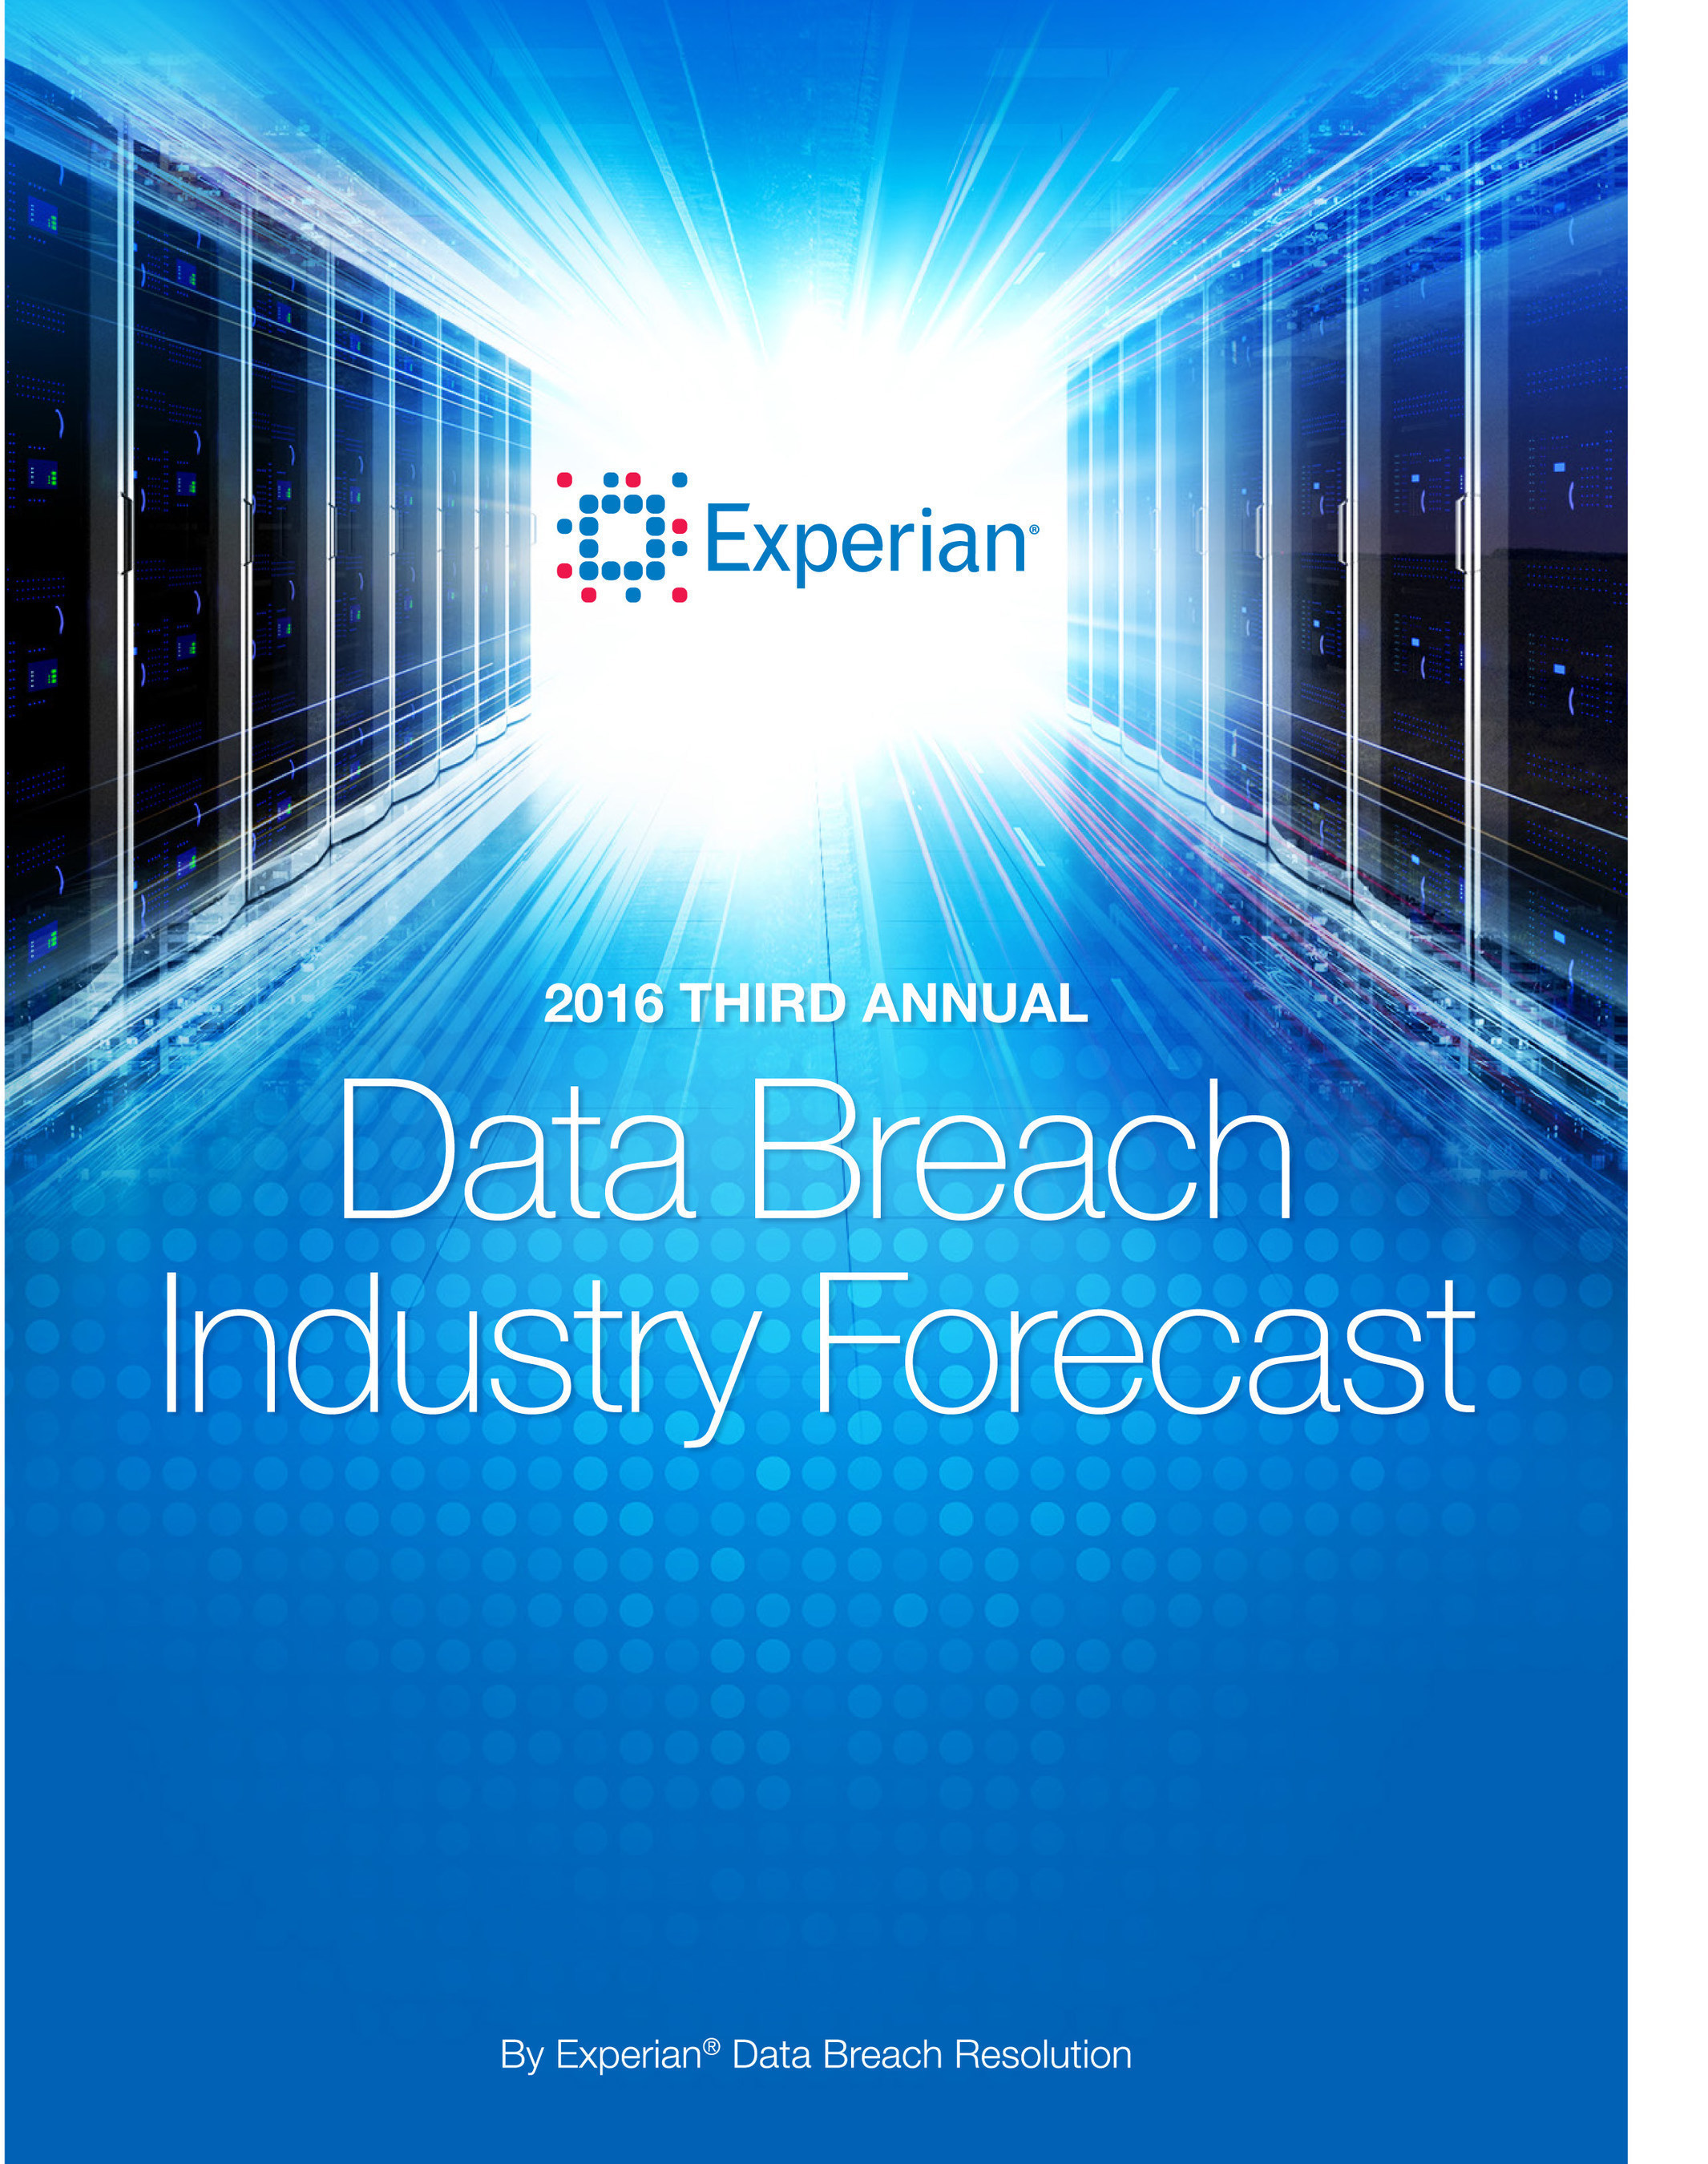 Experian Data Breach Resolution releases its third annual Data Breach Industry Forecast. Download the free report: http://bit.ly/1l05dq8